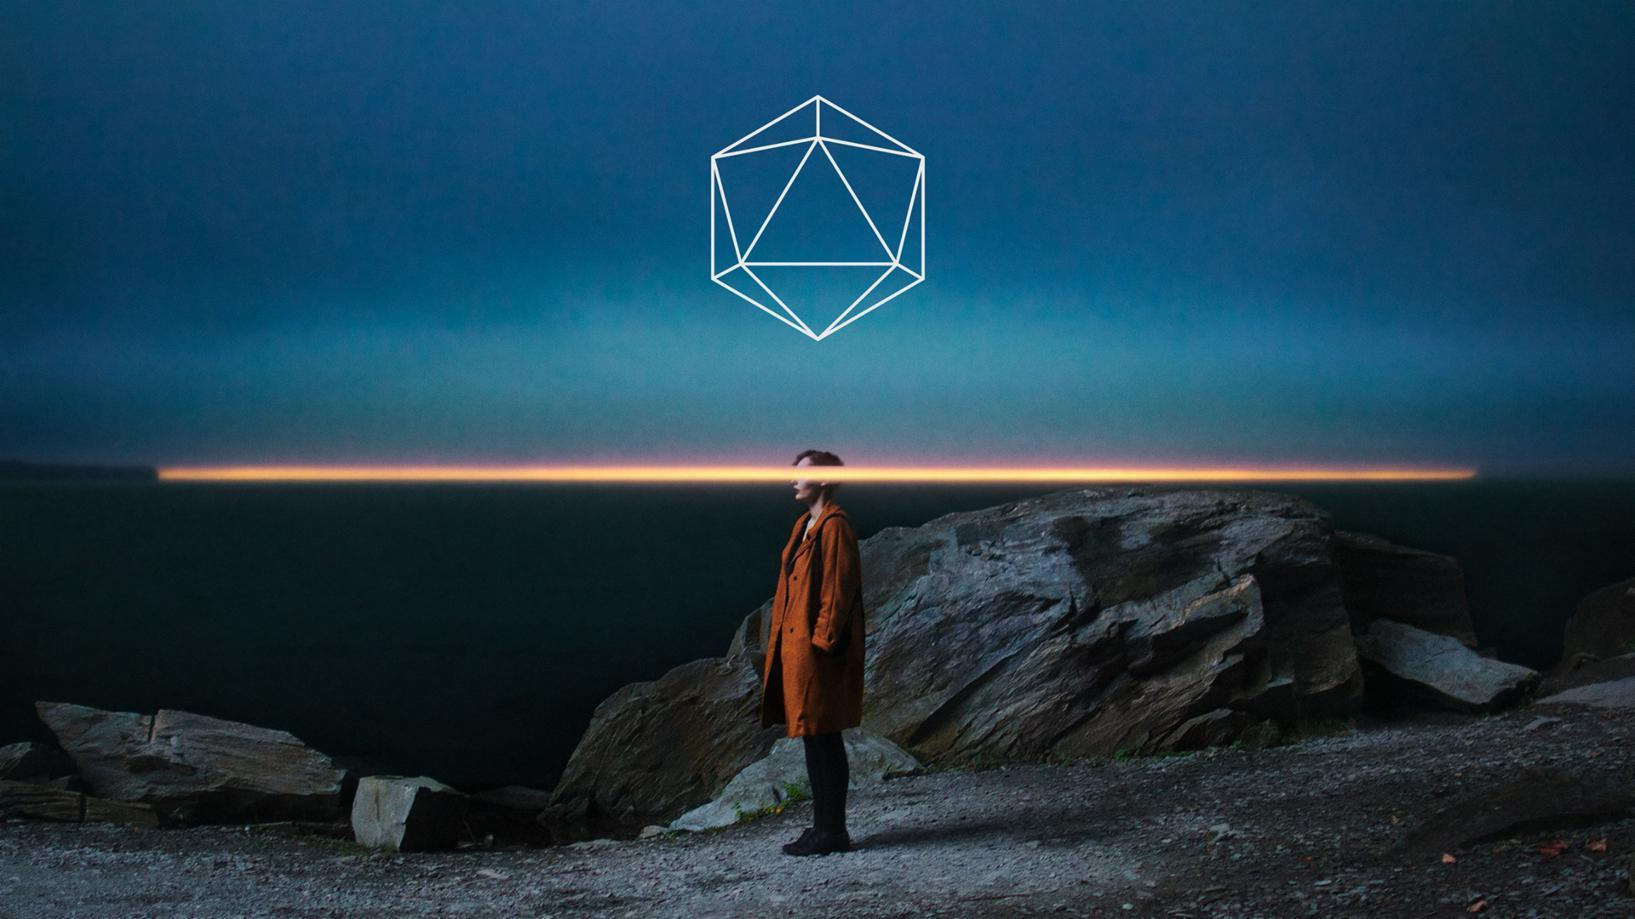 How many songs are on ODESZA's newly released album?